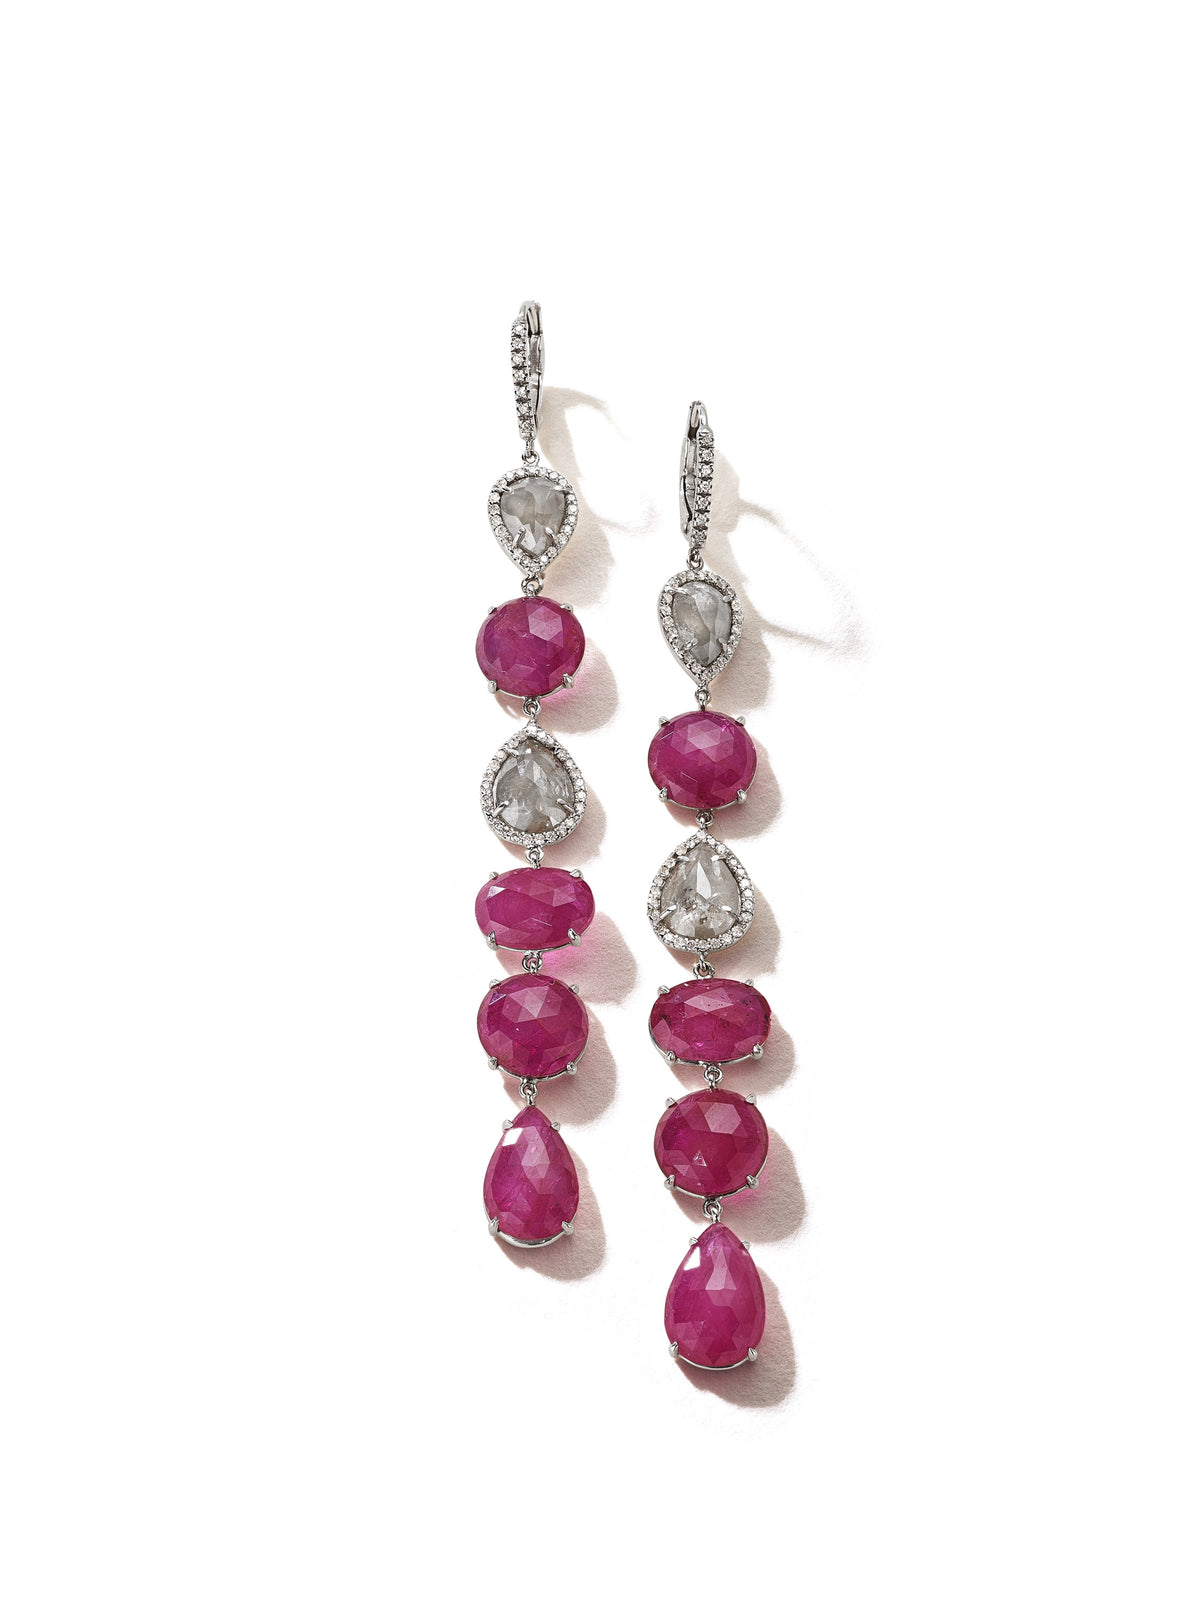 Ruby and Rough Diamond Line Earrings